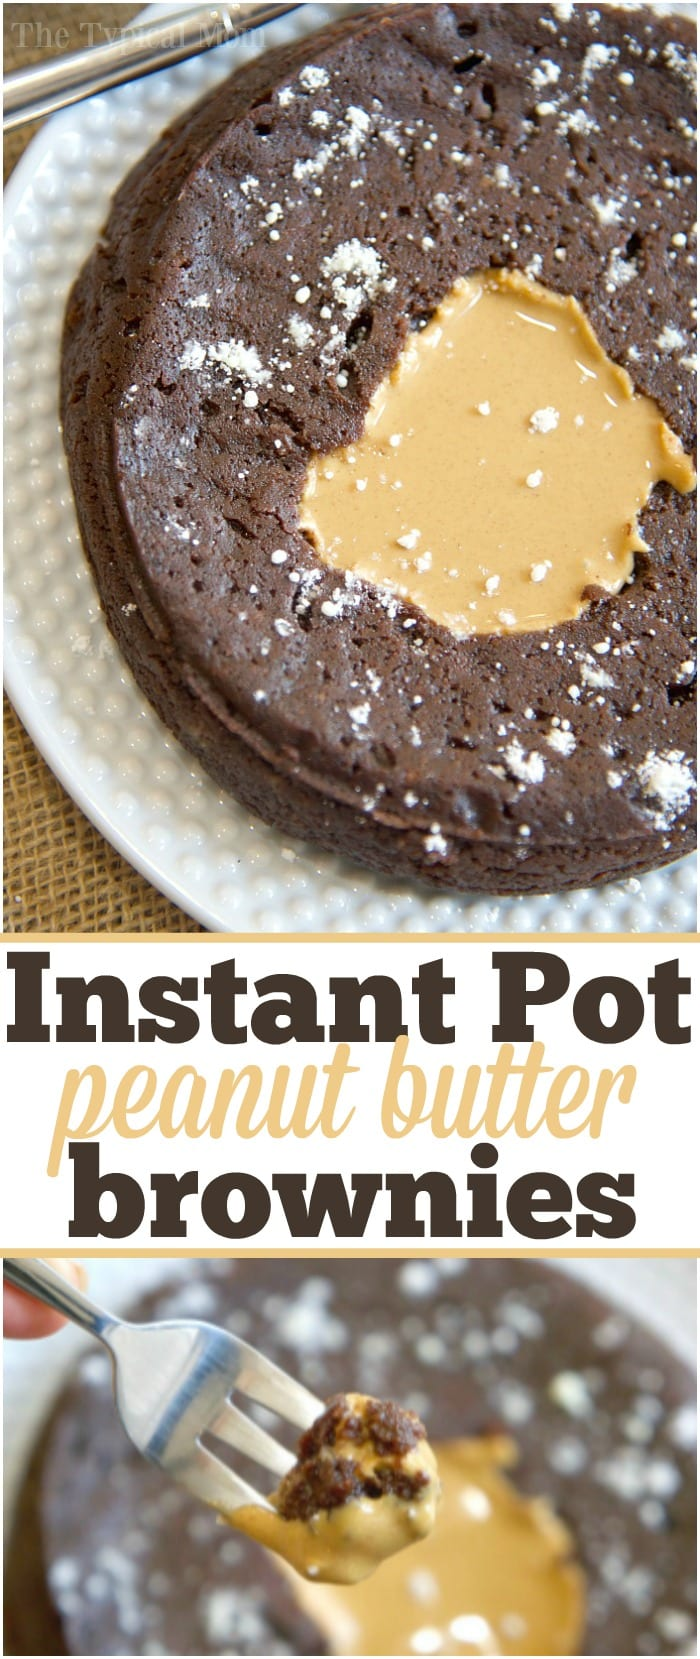 Easy peanut butter filled pressure cooker brownies that are fudgy ooey gooey and just amazing! The best chocolate pressure cooker dessert I've made so far in my Instant Pot!! You have got to try these for a little slice of heaven. #instantpot #pressurecooker #brownies #cake #chocolate #dessert #fudge #flourless #peanutbutter